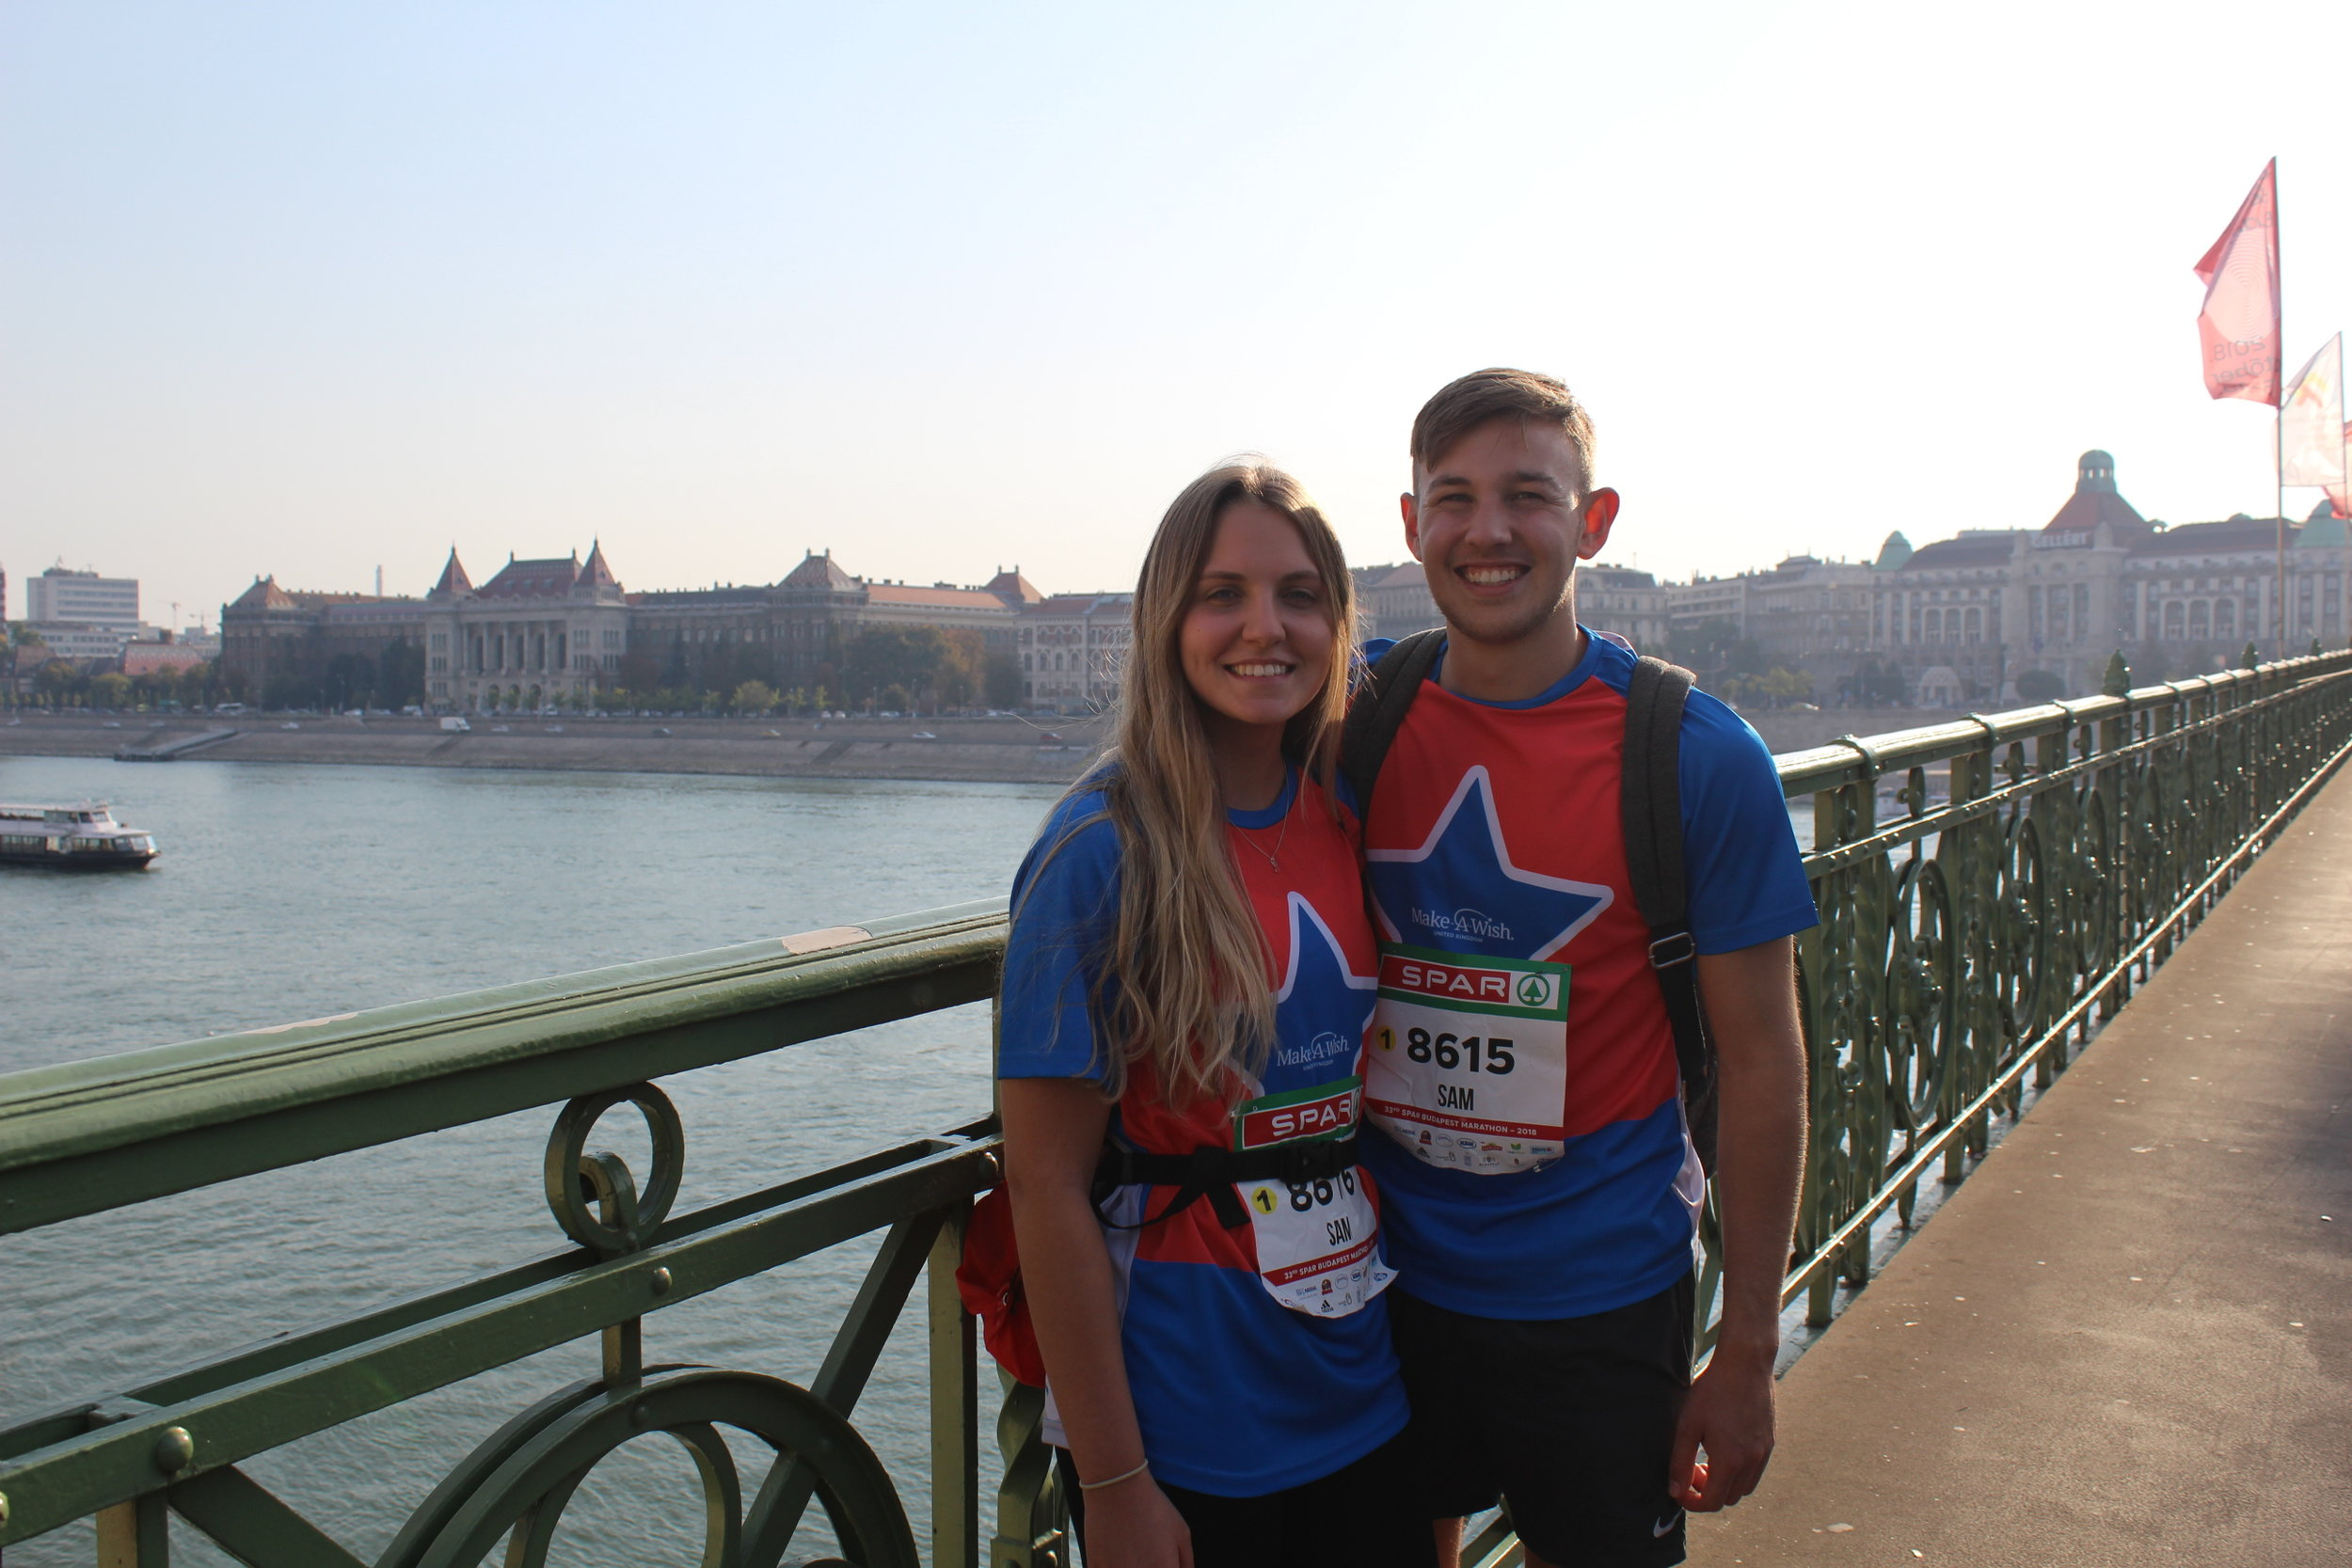 Two of the 2018 Budapest Marathon team